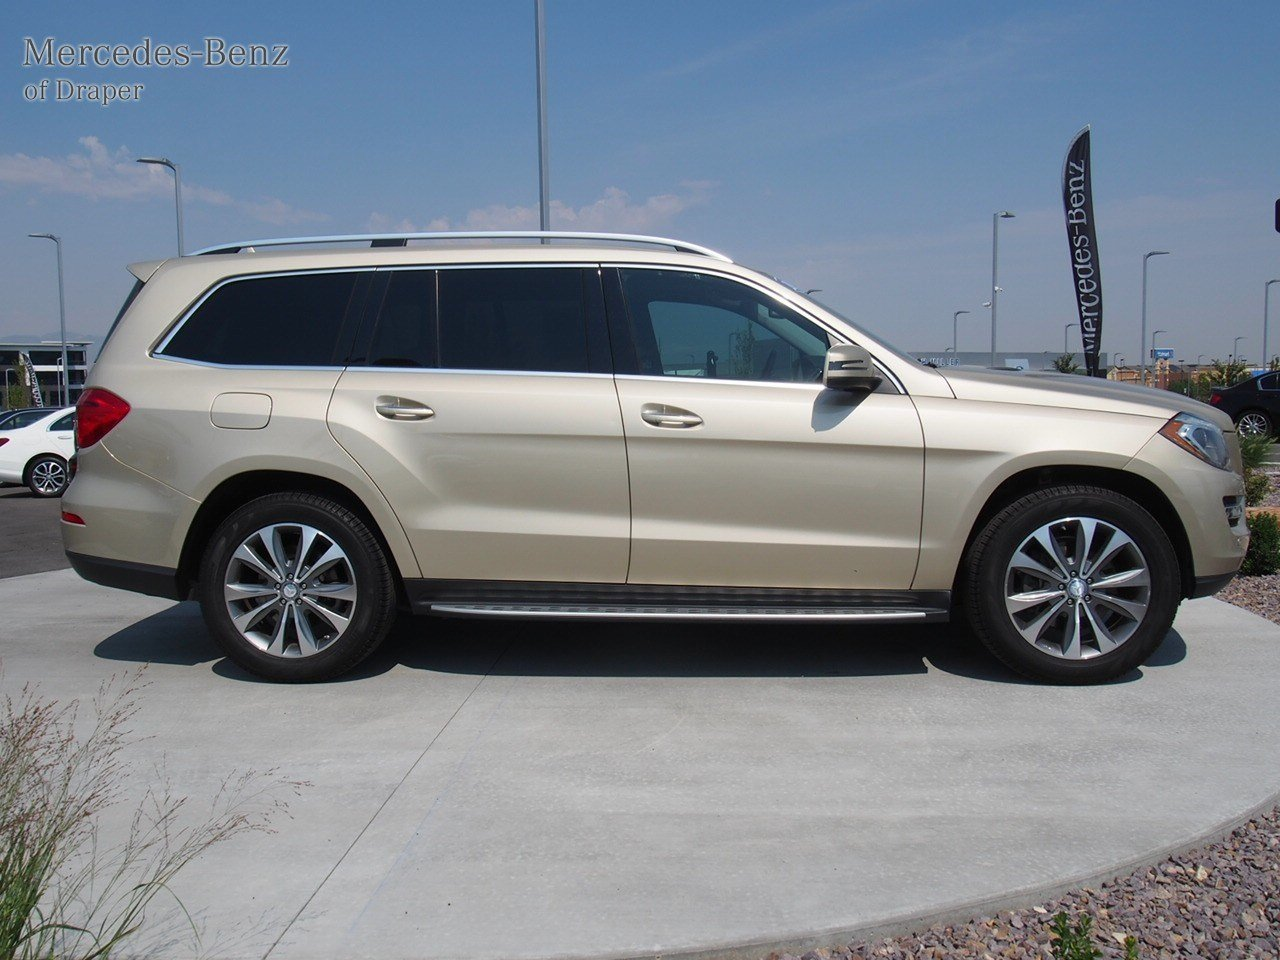 Pre Owned 2013 Mercedes Benz GL Class GL 350 BlueTEC 4MATIC®